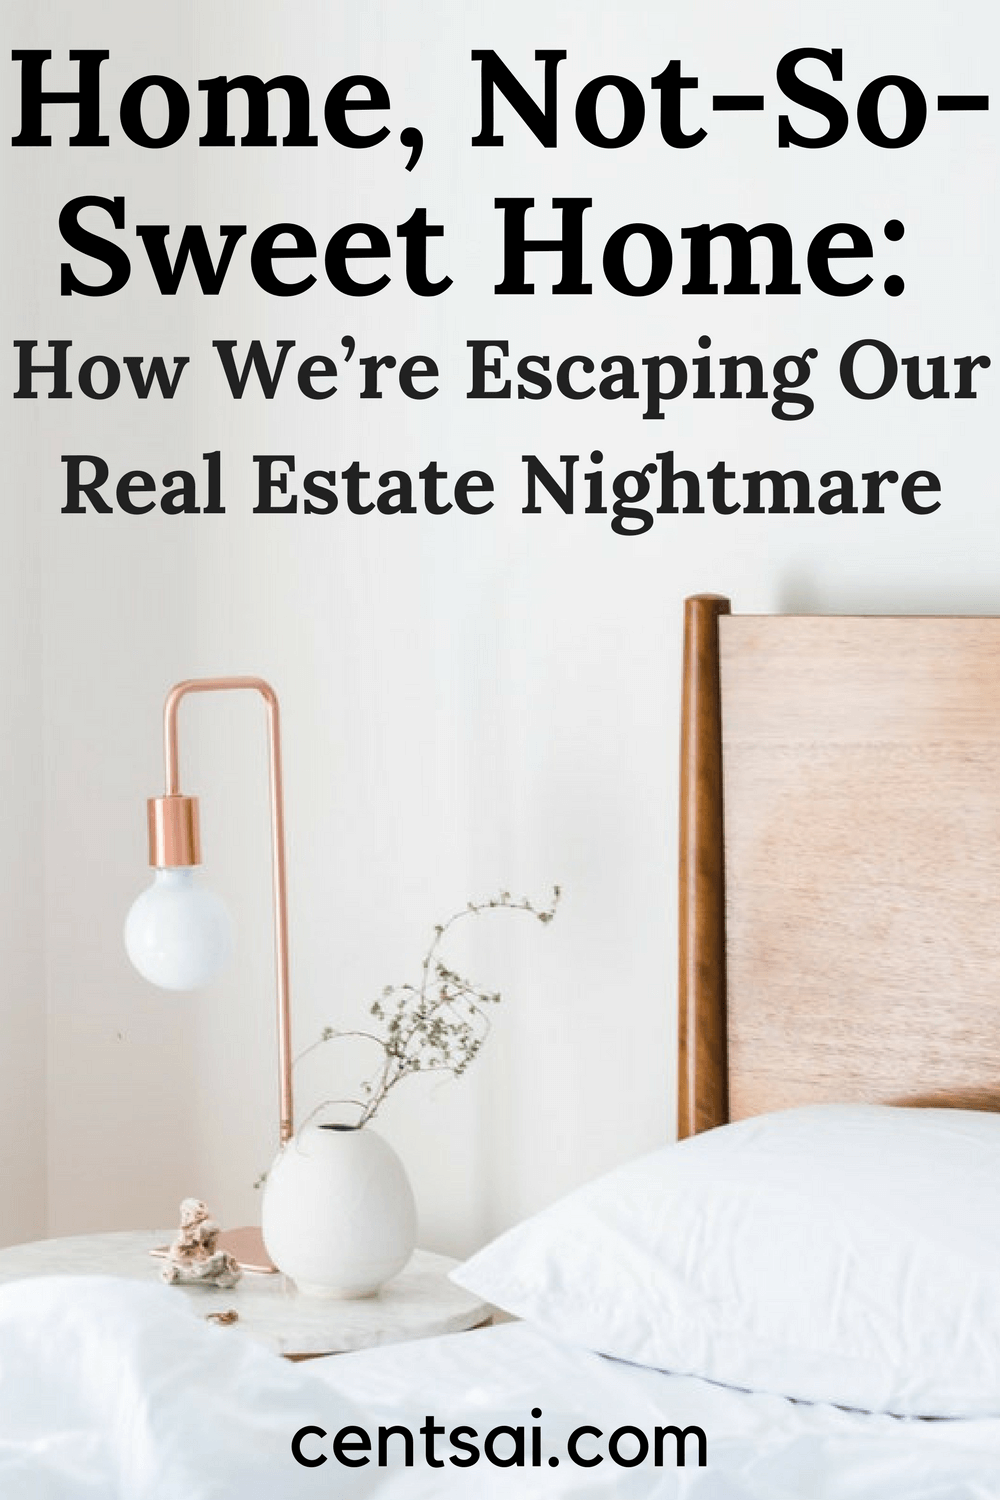 Home, Not-So-Sweet Home How We're Escaping Our Real Estate Nightmare